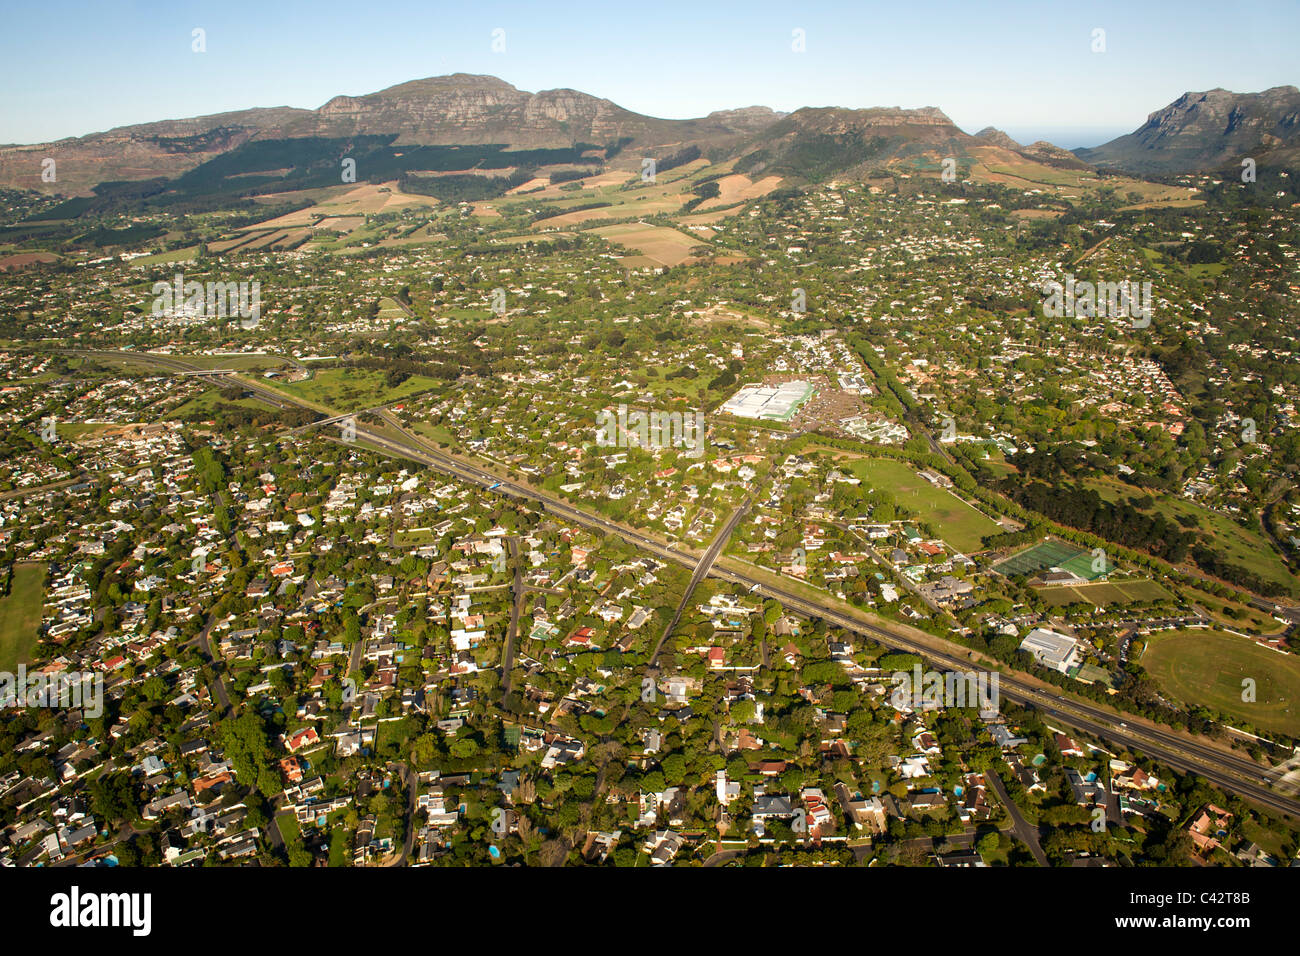 Aerial view of Cape Town's southern suburbs including Constantia, Meadowridge and Plumstead. - Stock Image